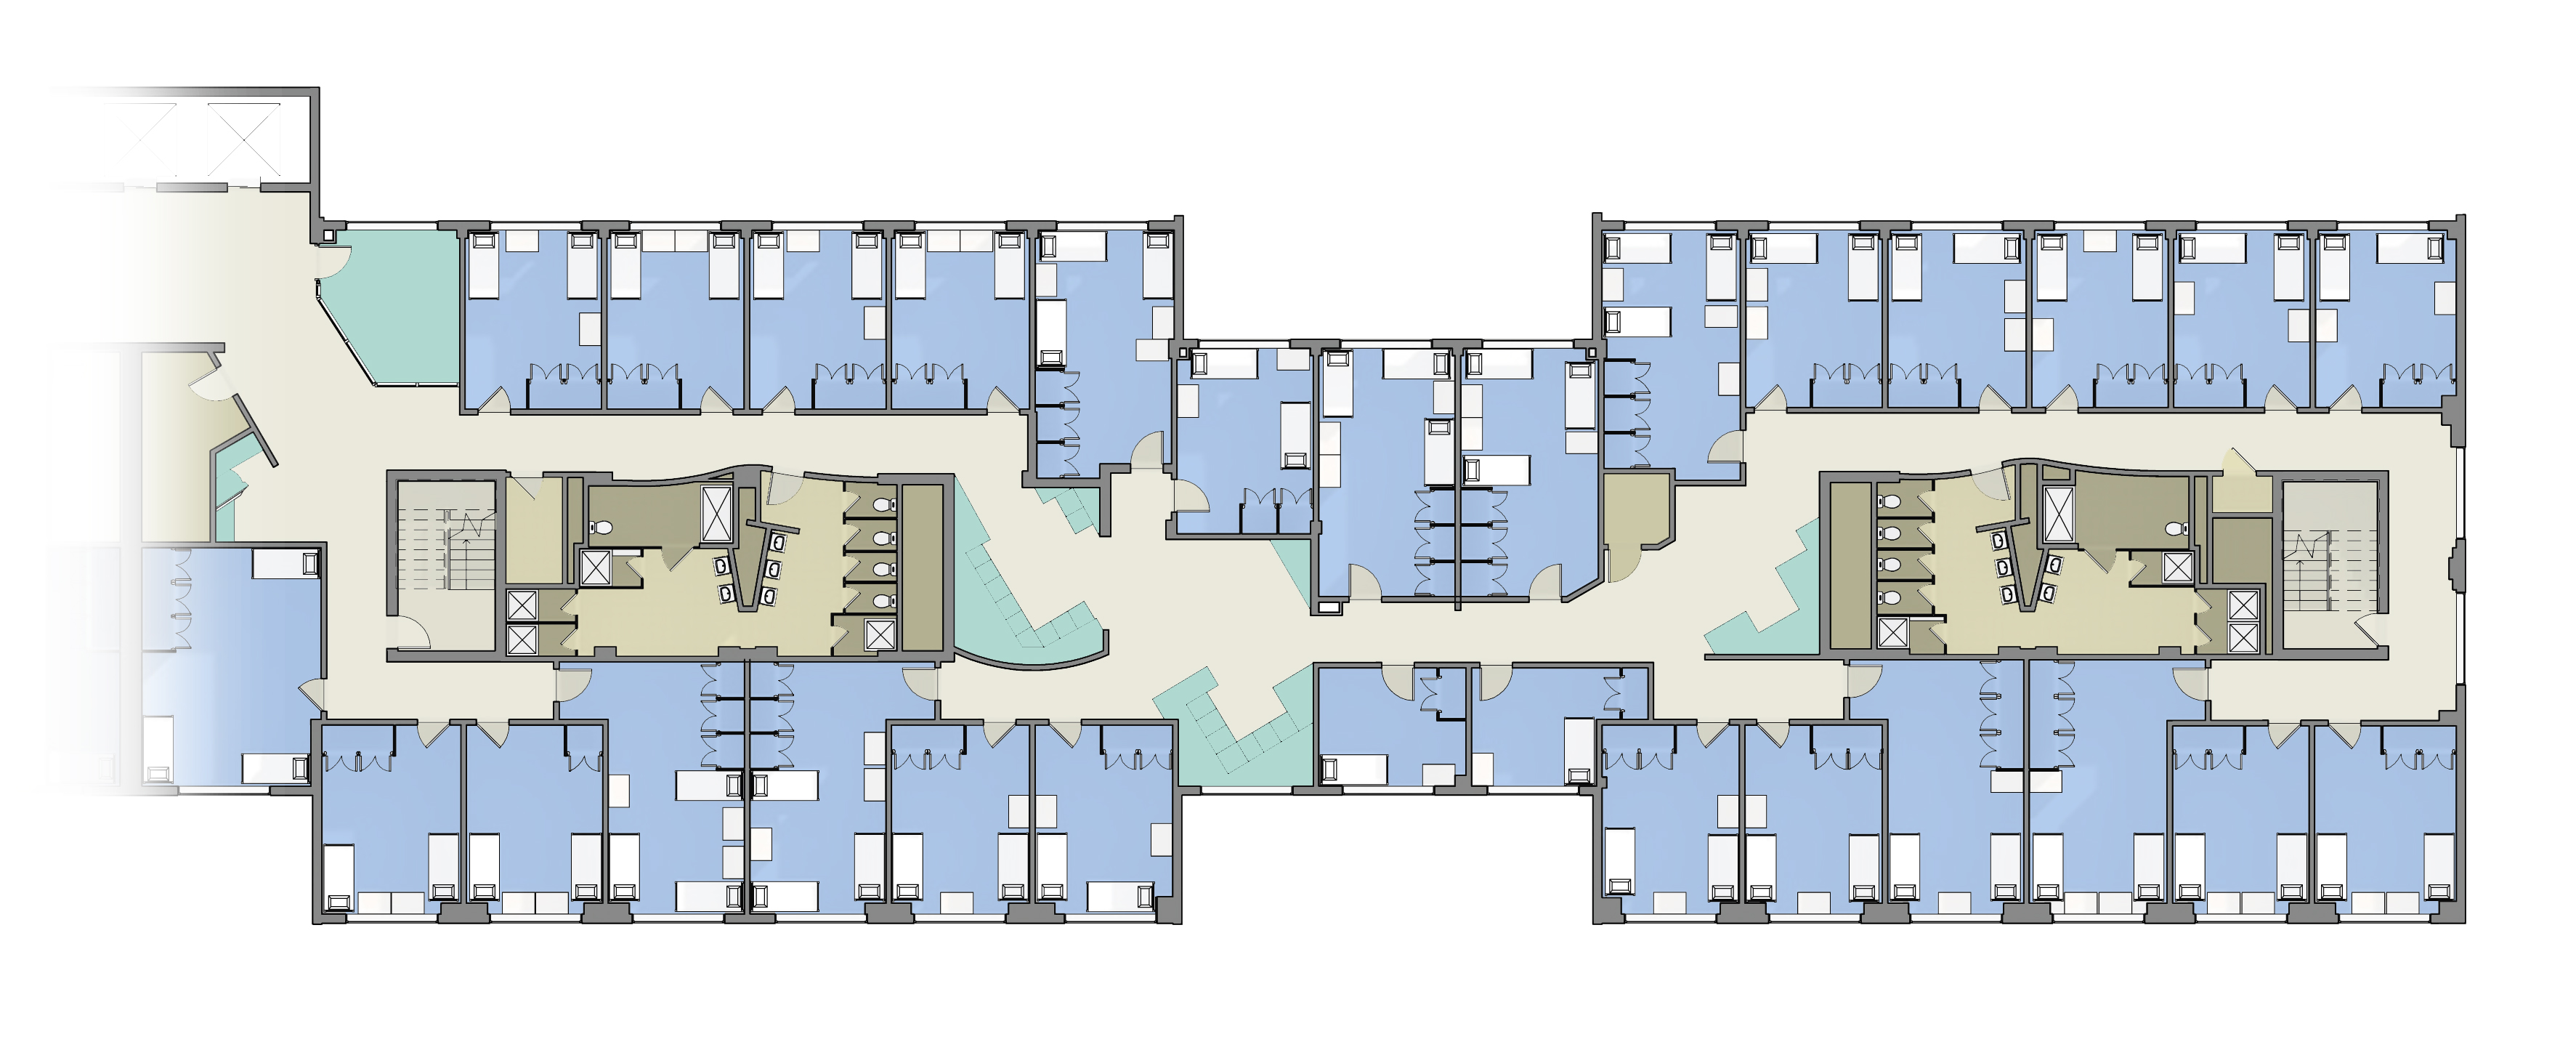 Floor Plan: Typical Floor Plan